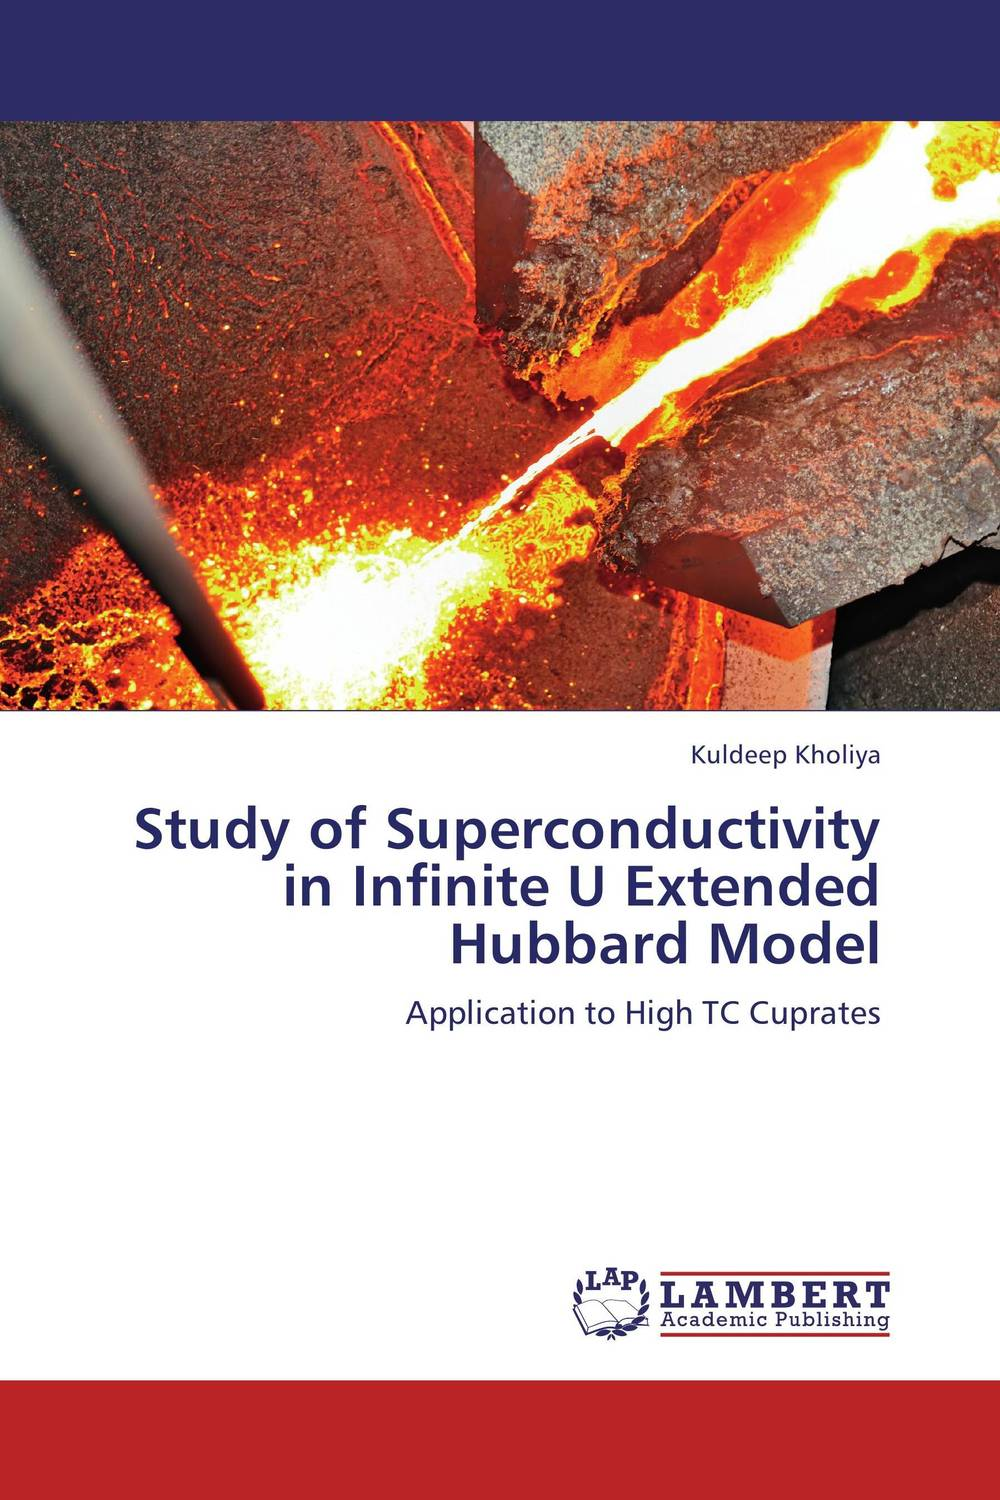 Study of Superconductivity in Infinite U Extended Hubbard Model fundamentals of physics extended 9th edition international student version with wileyplus set